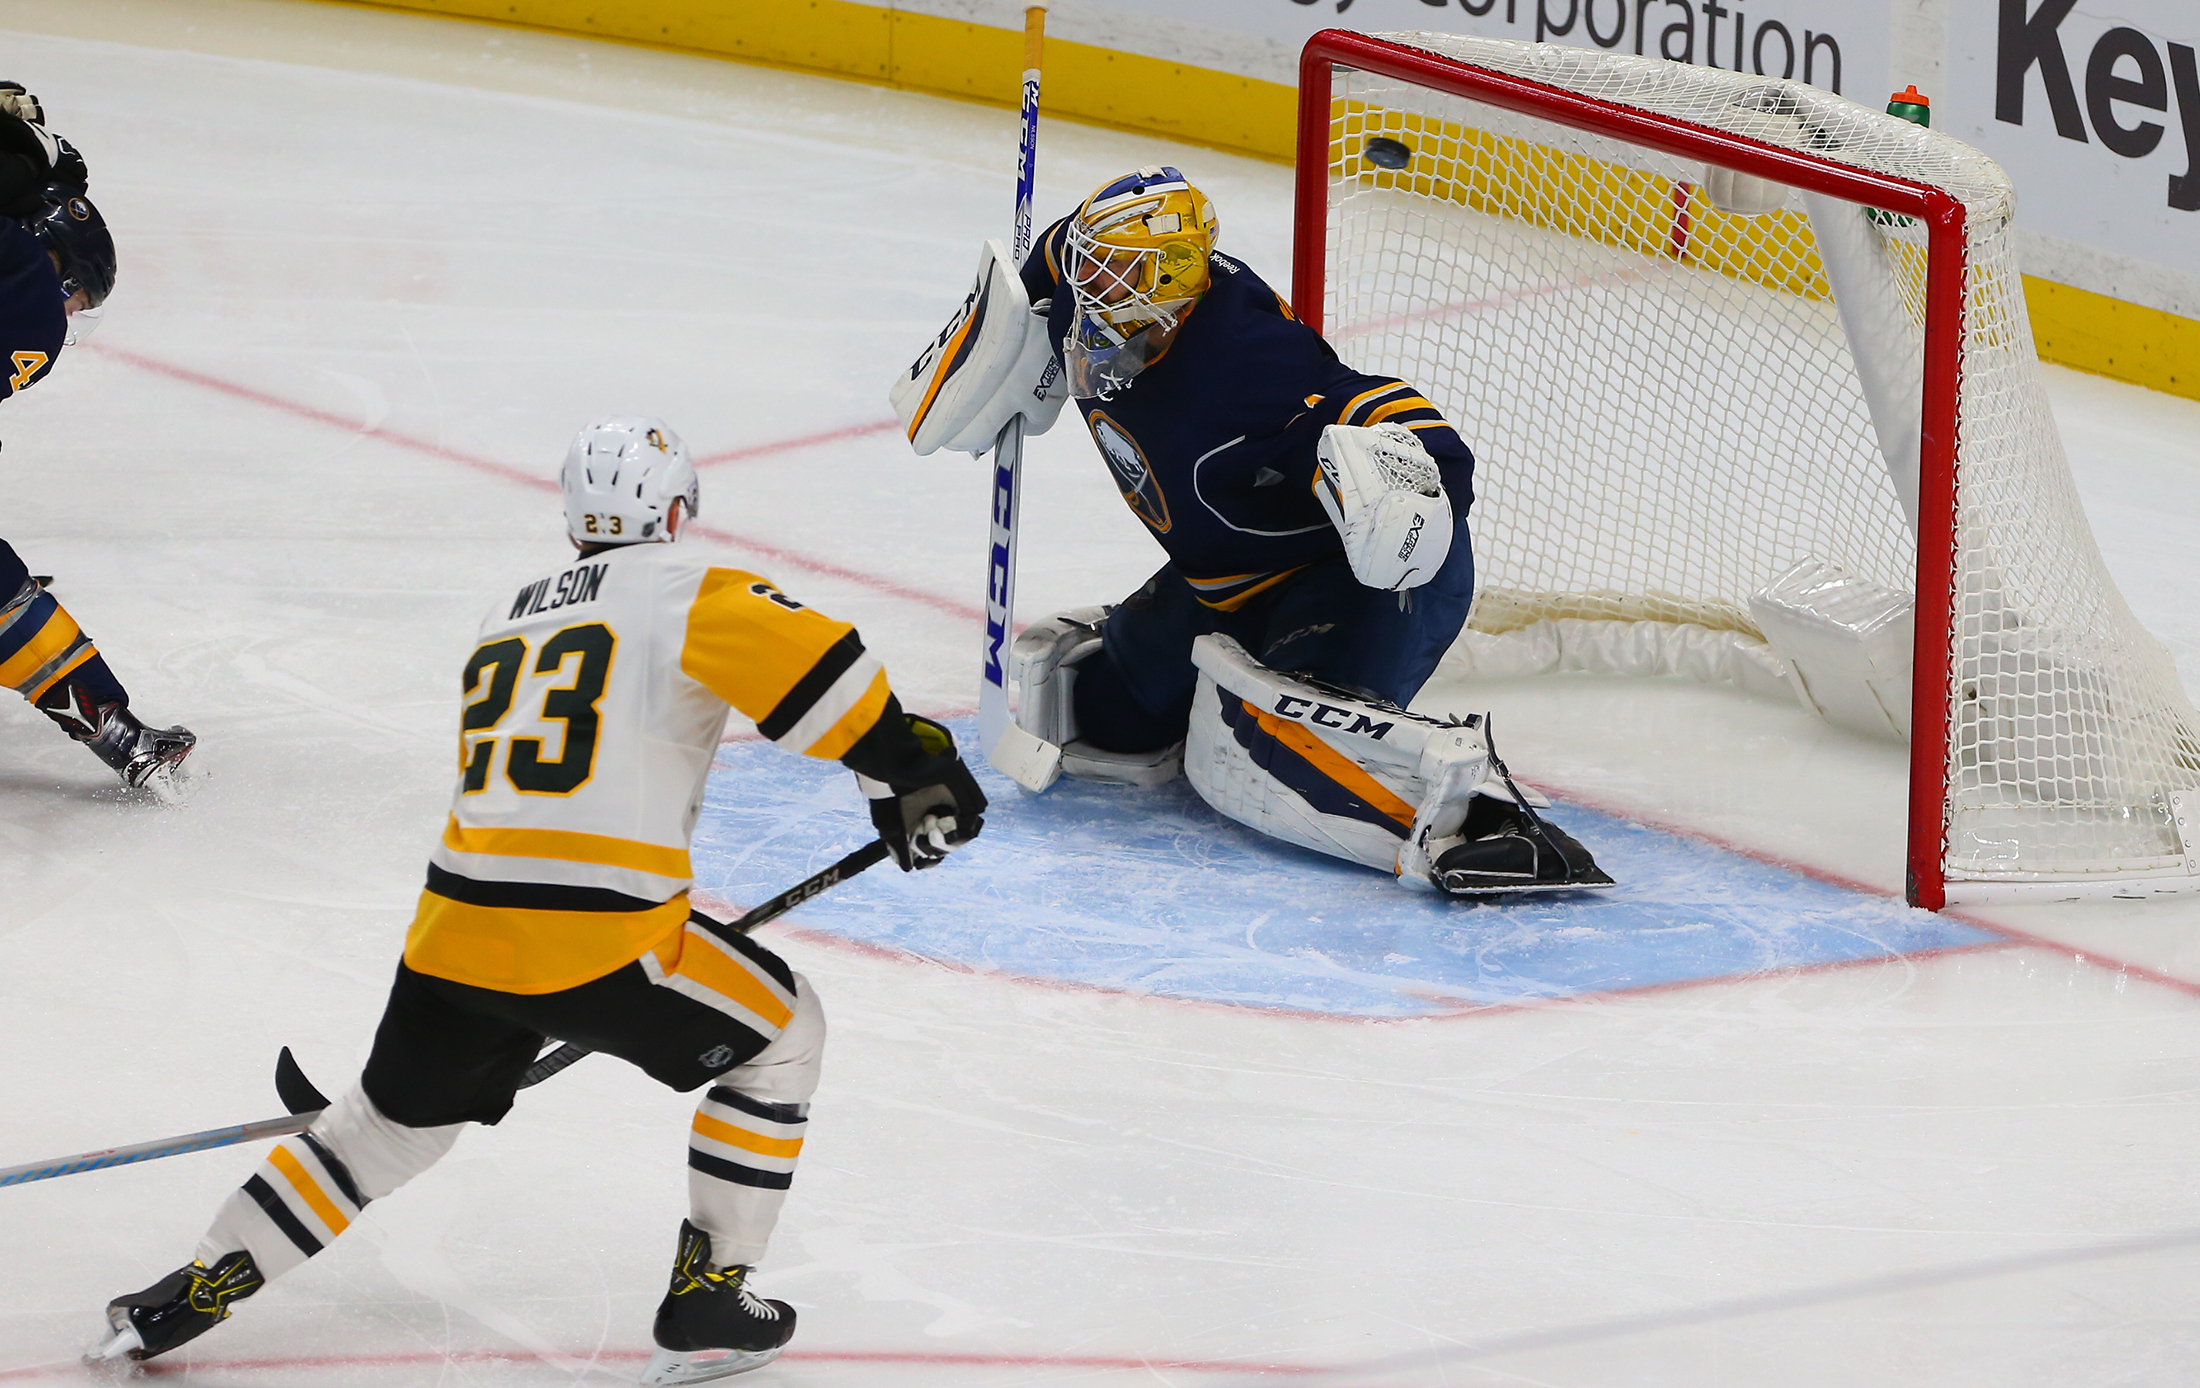 The Pittsburgh Penguins fired 47 shots on Sabres goalie Anders Nilsson. (John Hickey/Buffalo News)